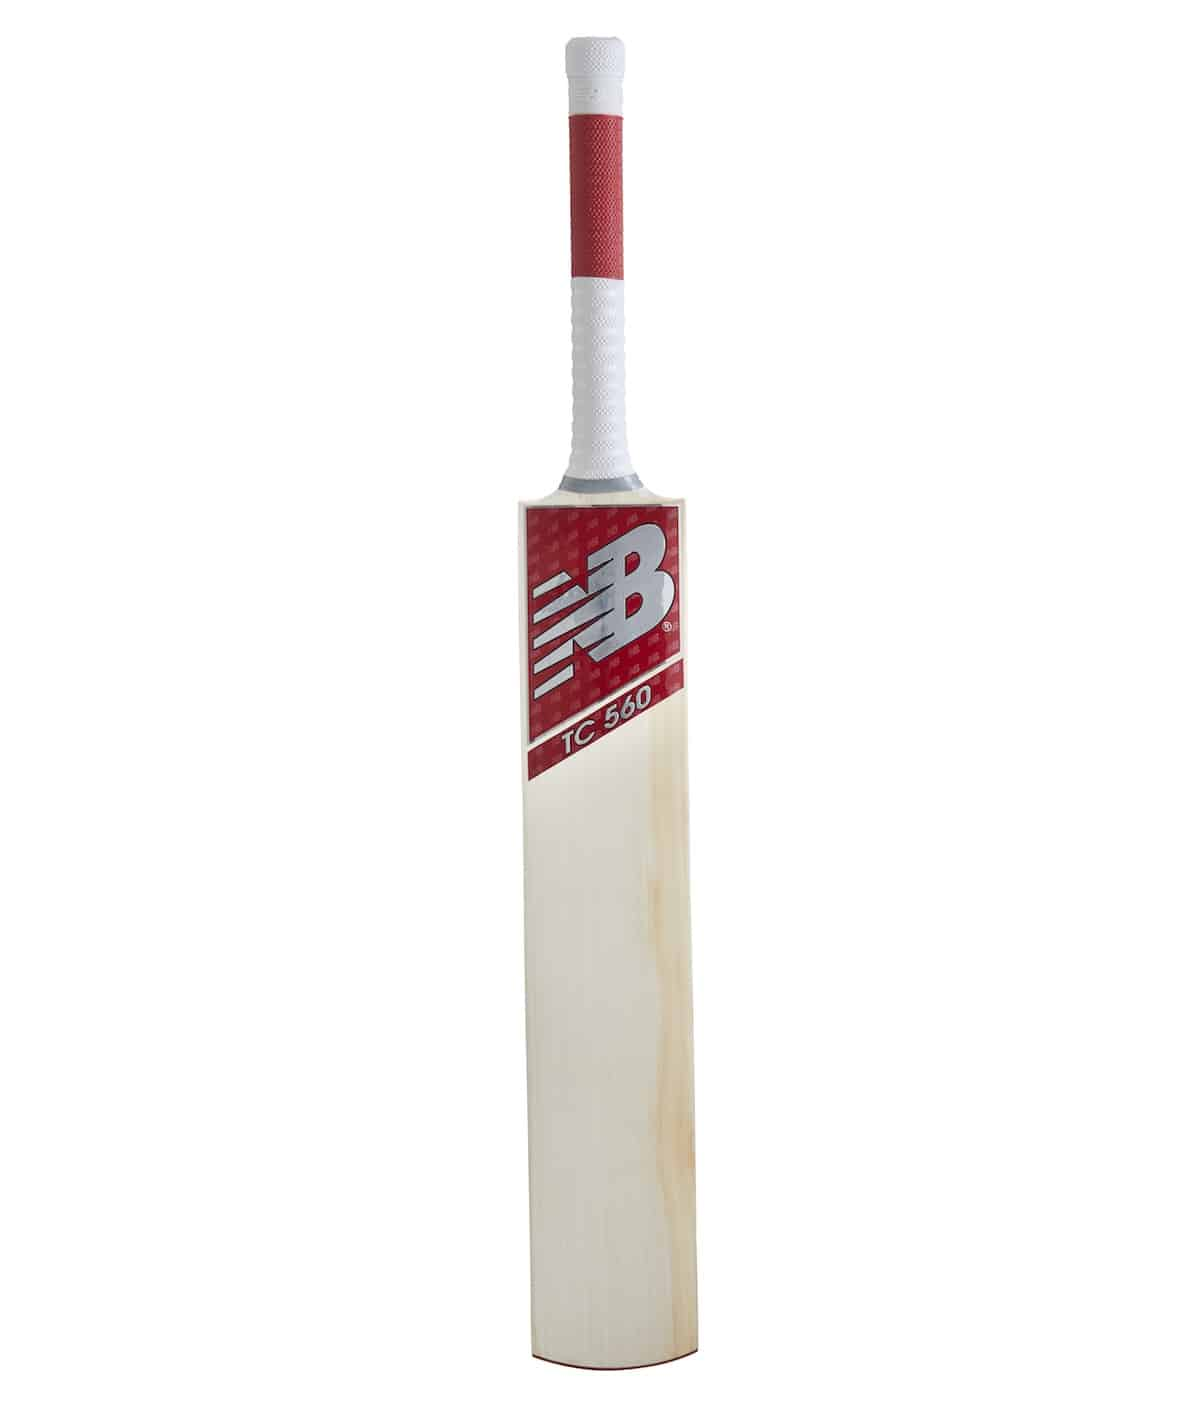 NB TC560 Cricket Bat